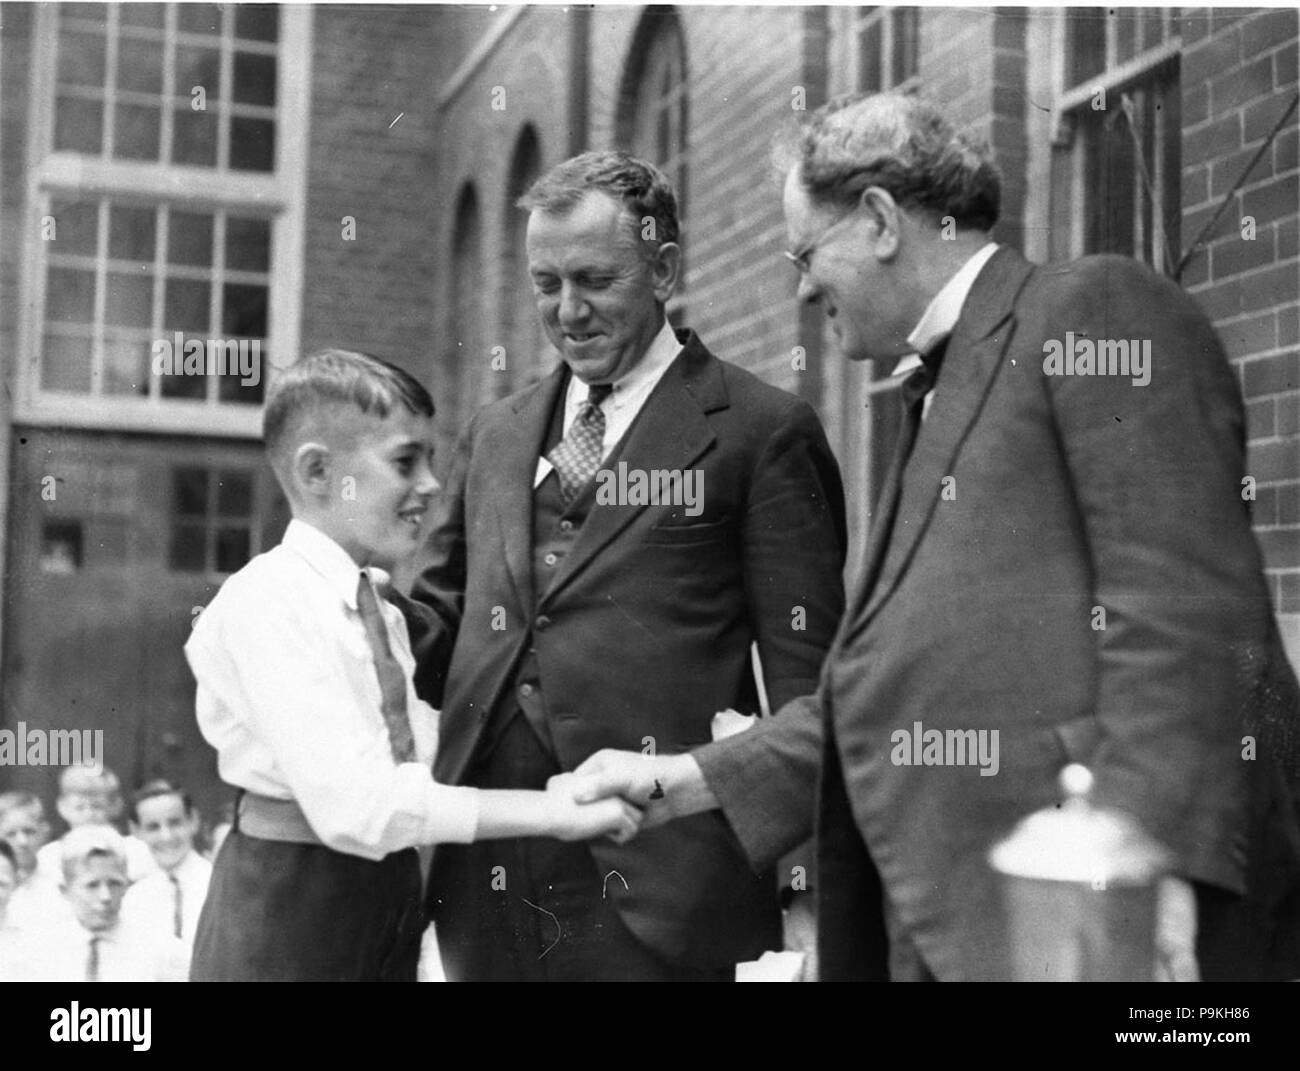 265 SLNSW 43234 Director of Education G Ross Thomas shakes hands with the dux of Drummoyne Primary School - Stock Image